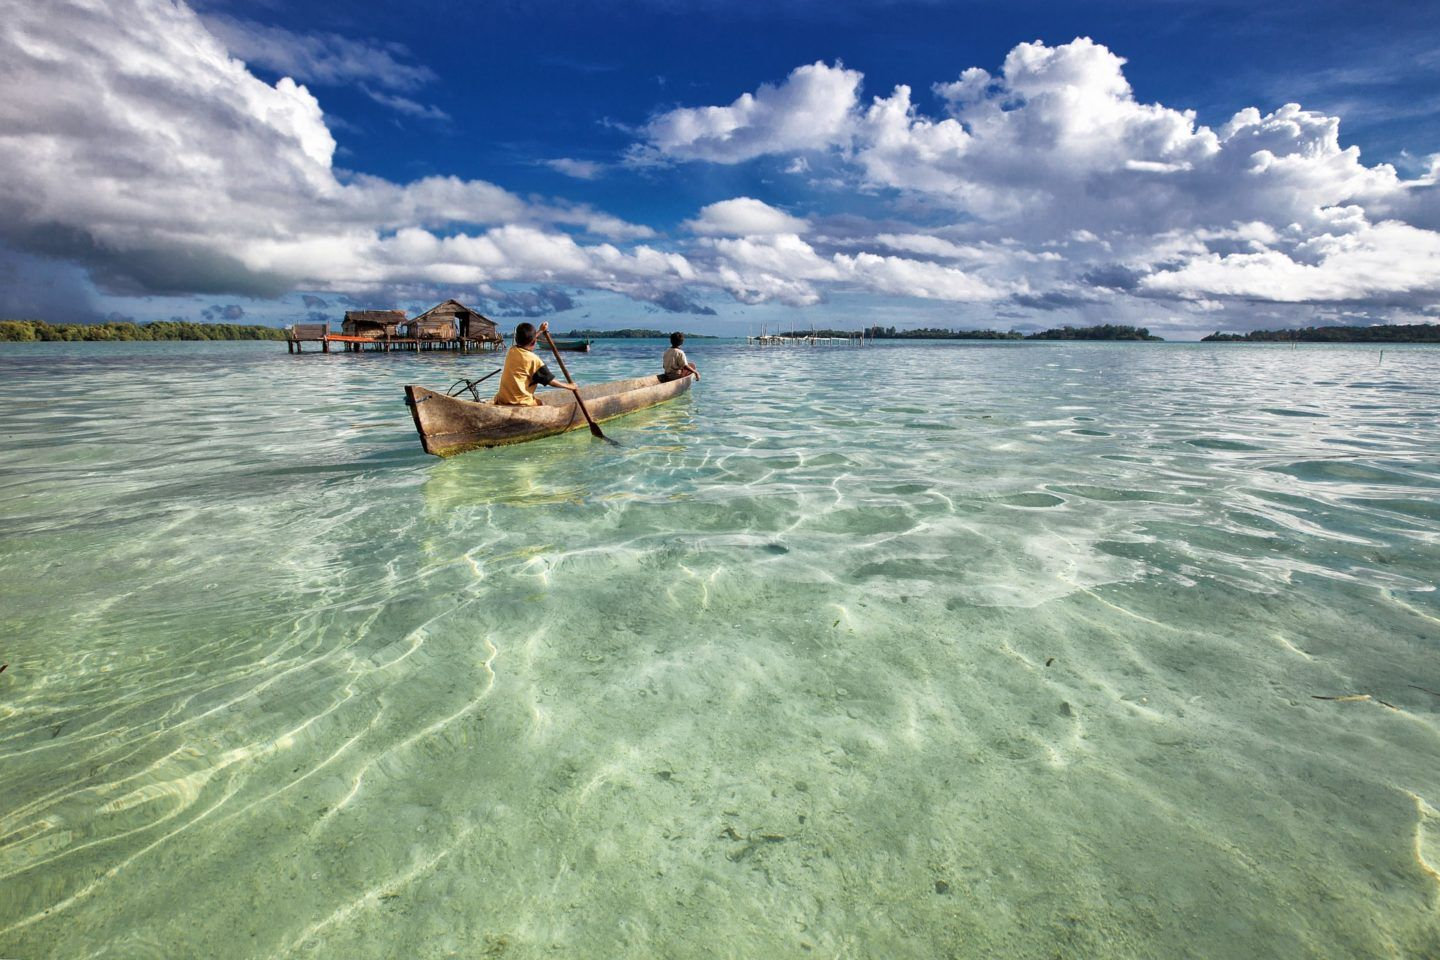 Our snorkelling experience in Indonesia Siddharth and